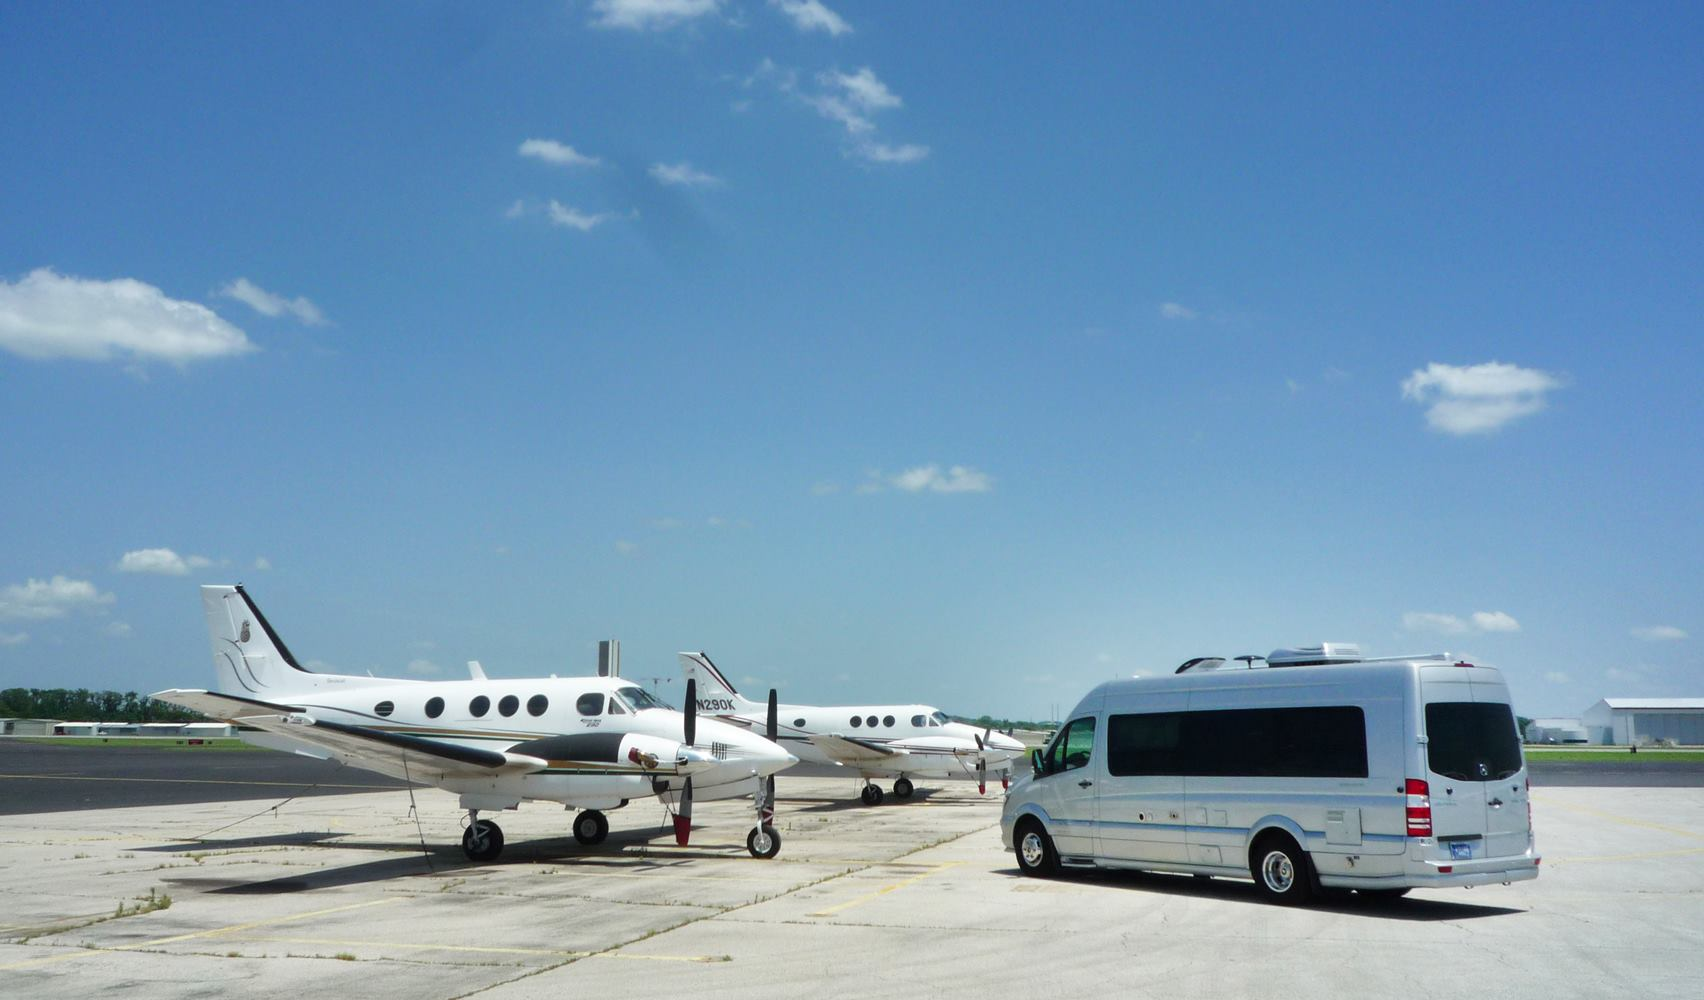 Airstream Touring Coach and Planes